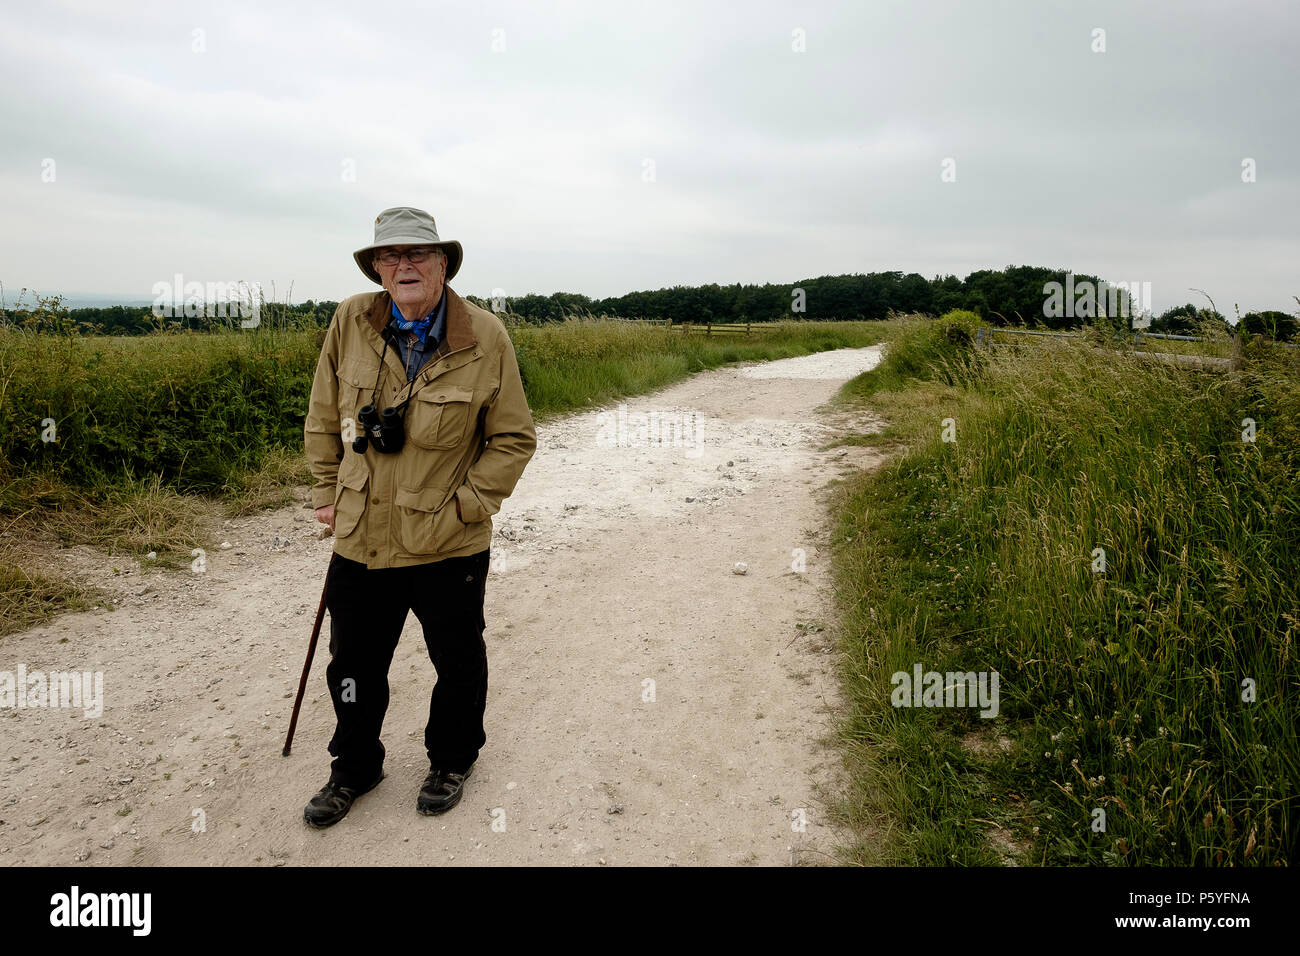 Peter Anderson, joint author of the guide book A Companion on the South Downs Way on the South Downs Way - Stock Image